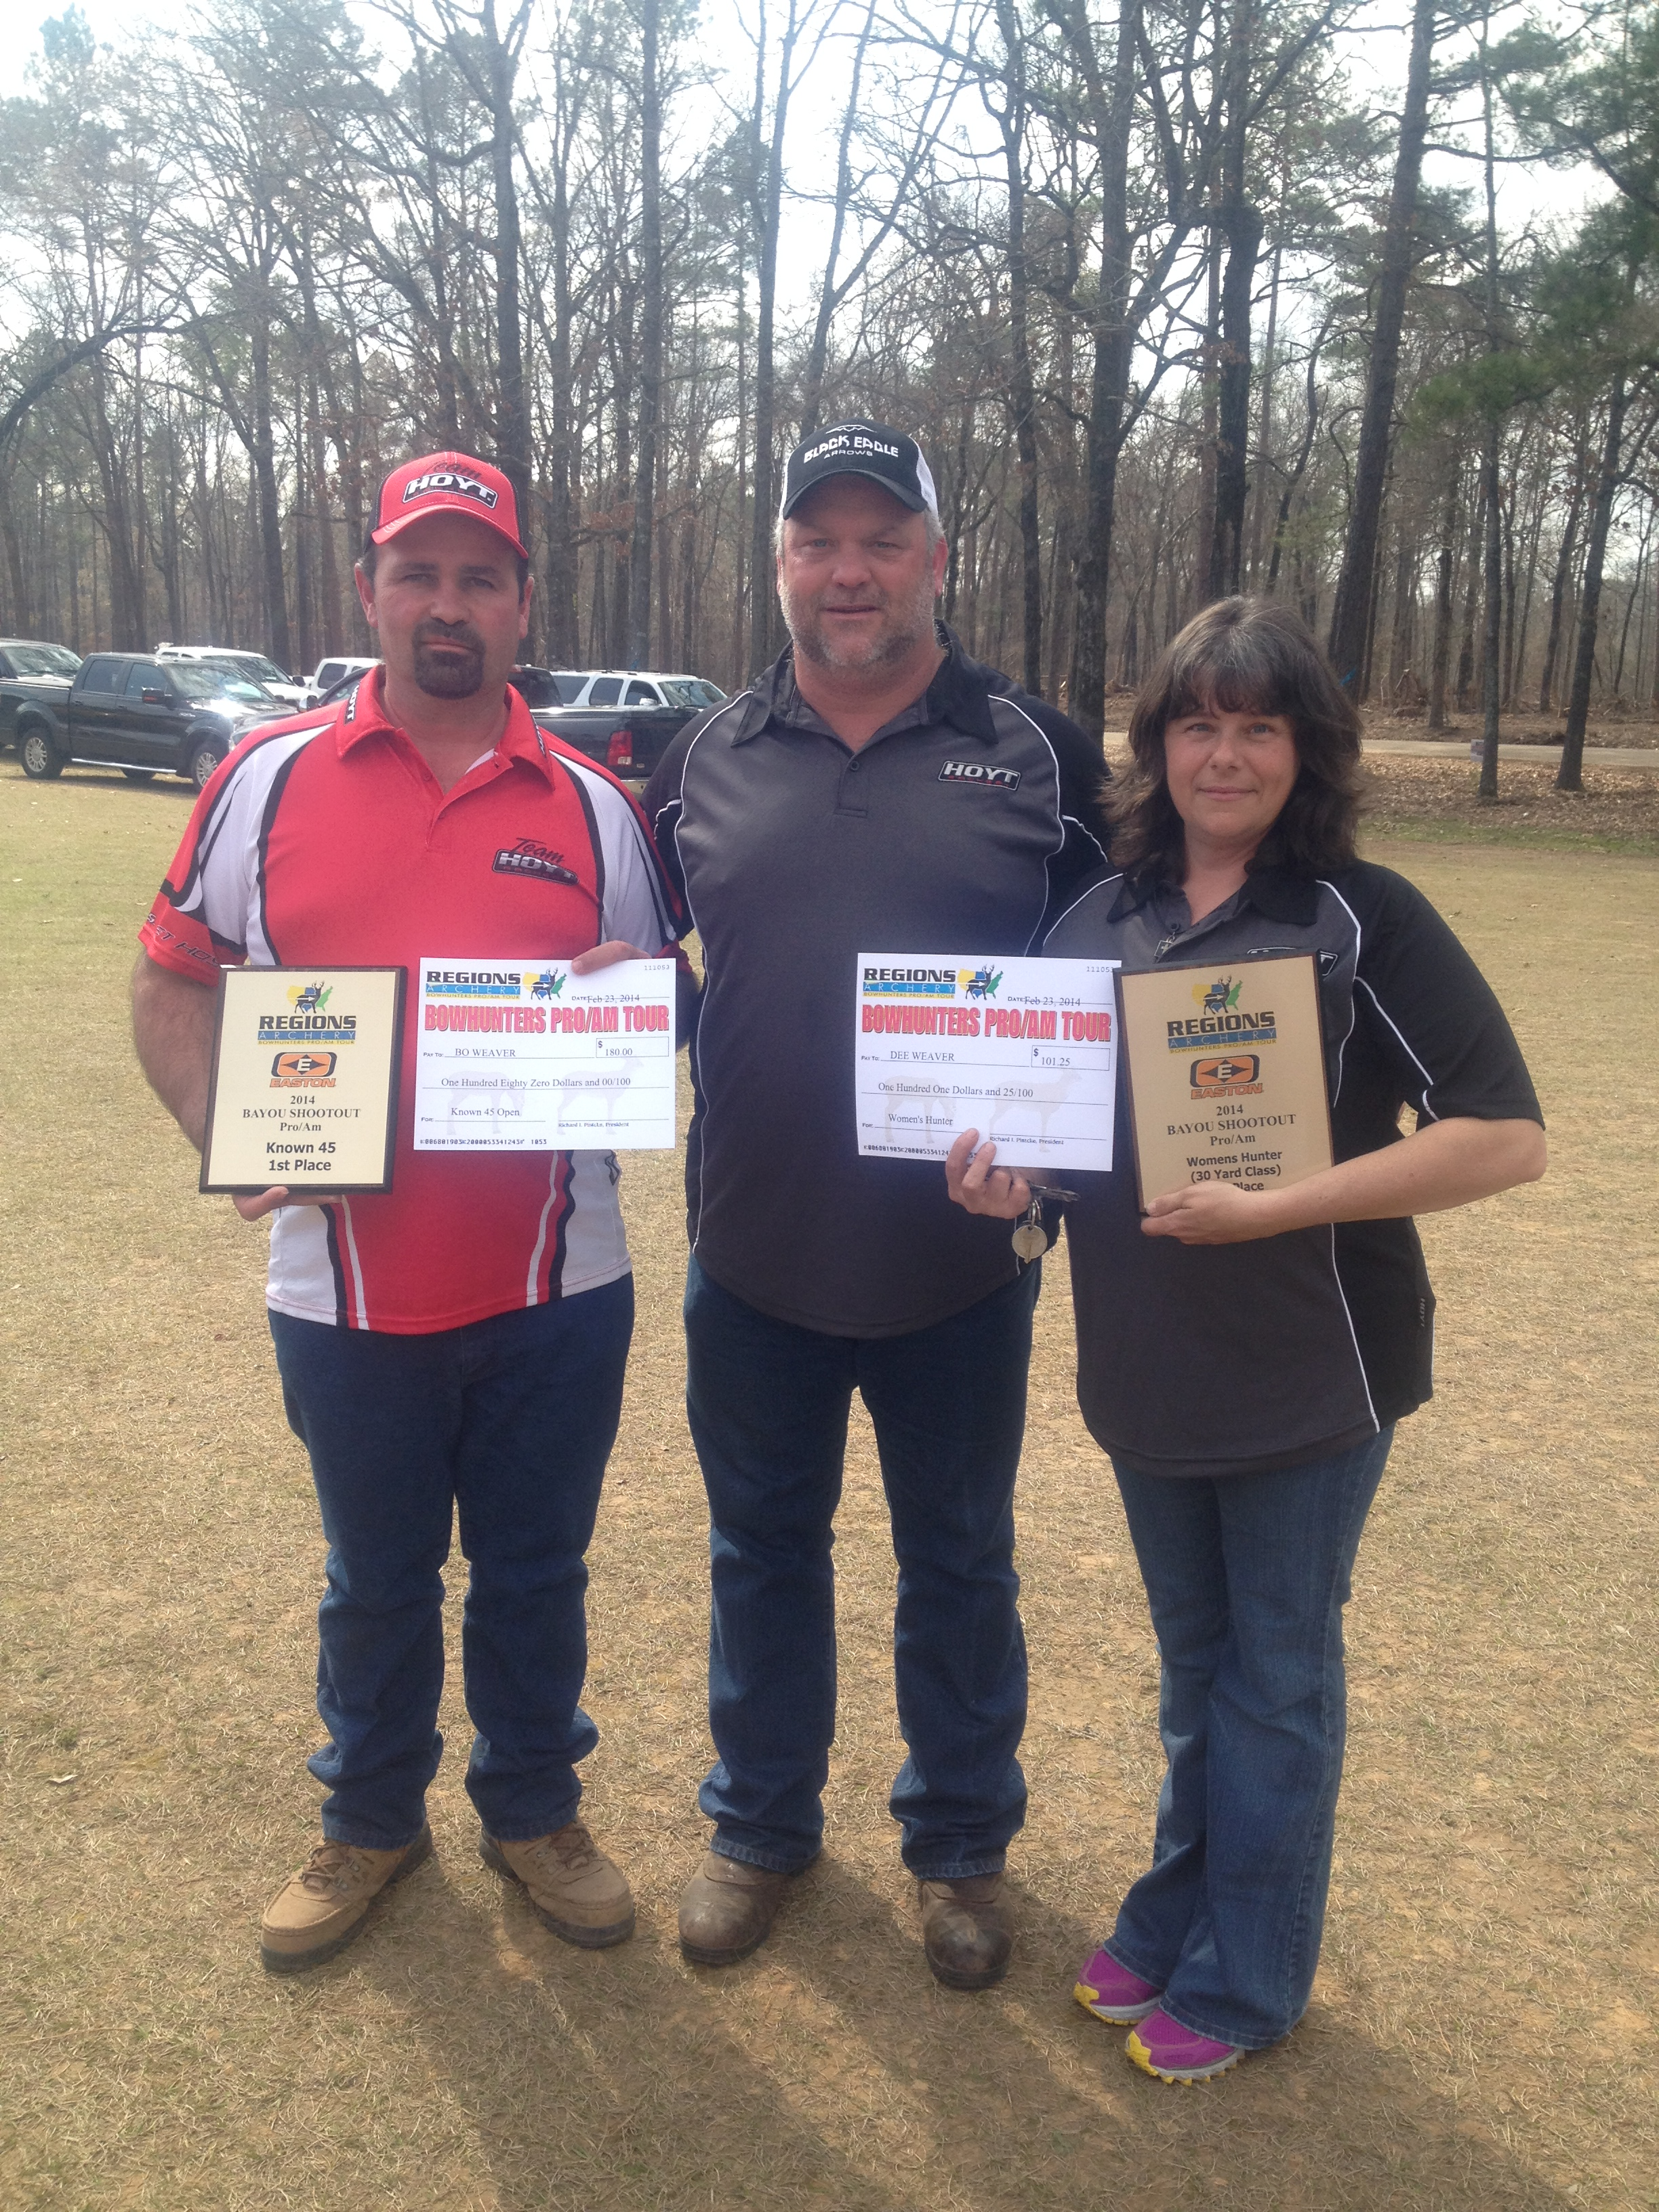 Congratulations to Bo and Dee Weaver - 2014 winners of the Regions Archery Bayou Shootout in Men's Known 45 and Women's Hunter.